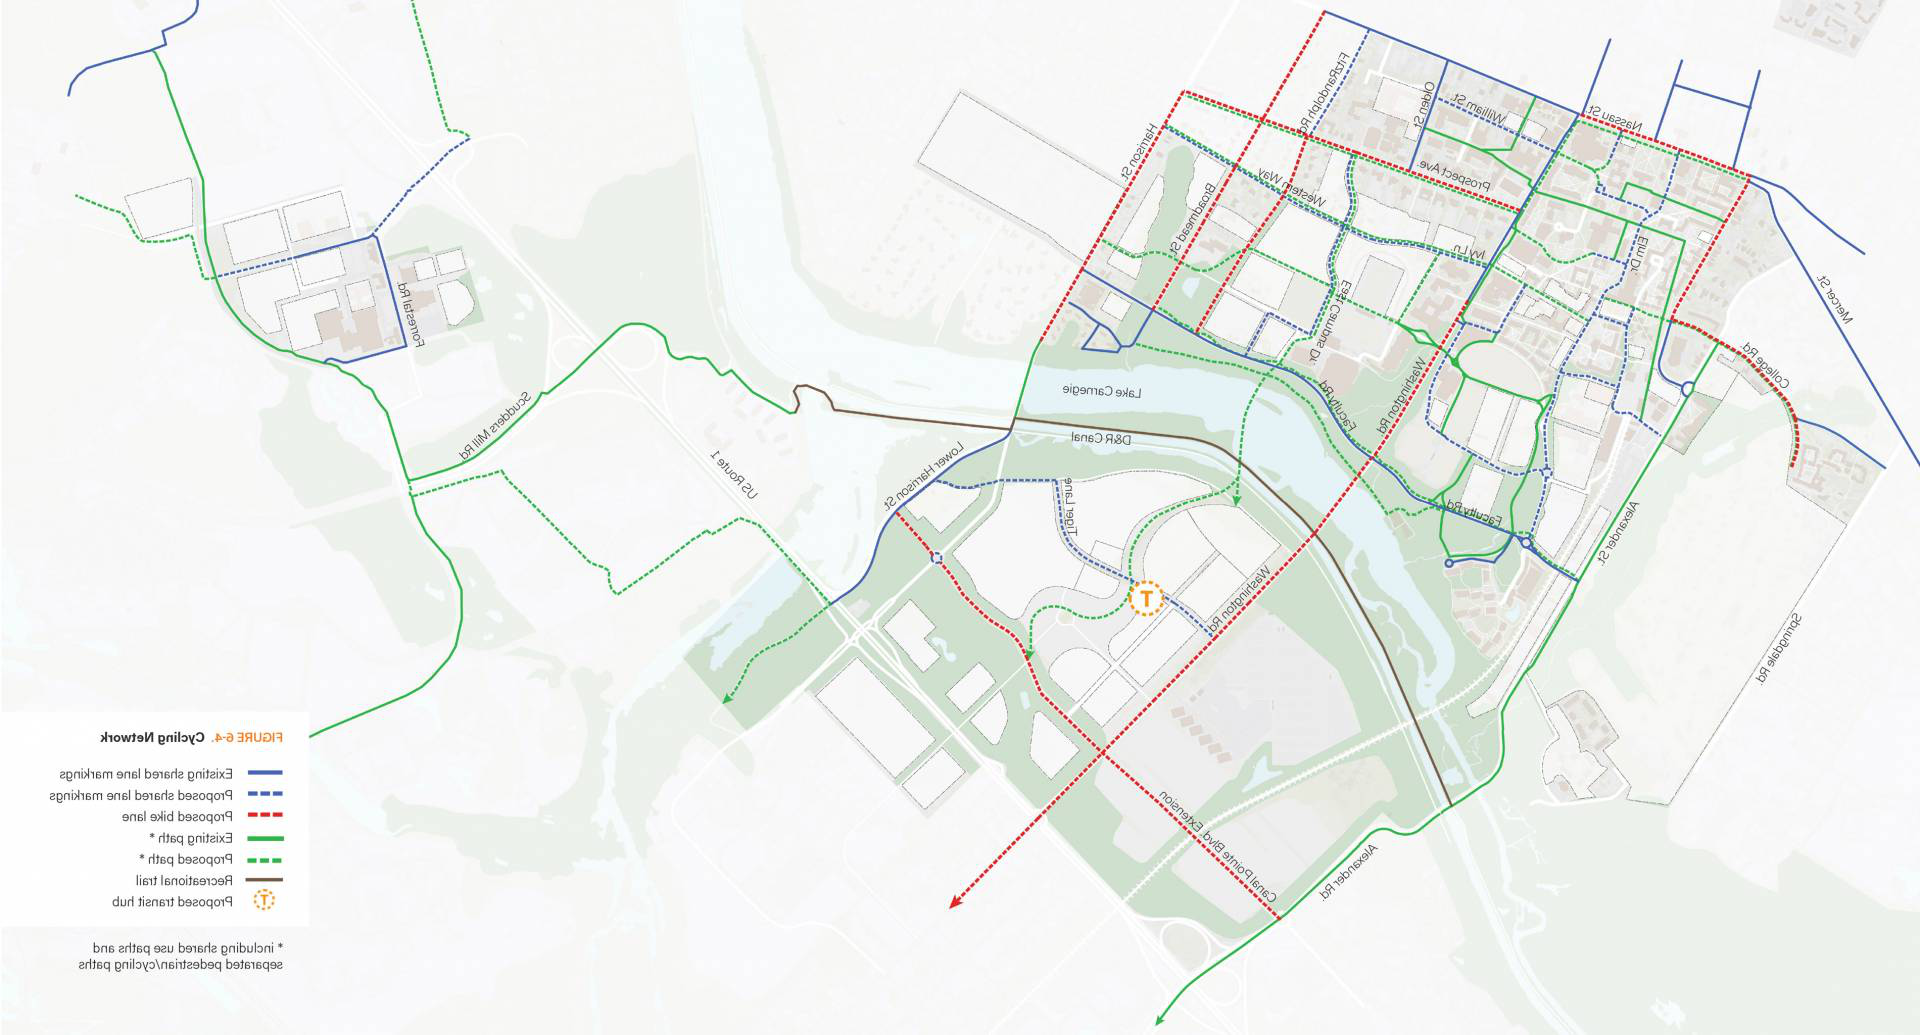 Map of potential cycling network from campus plan